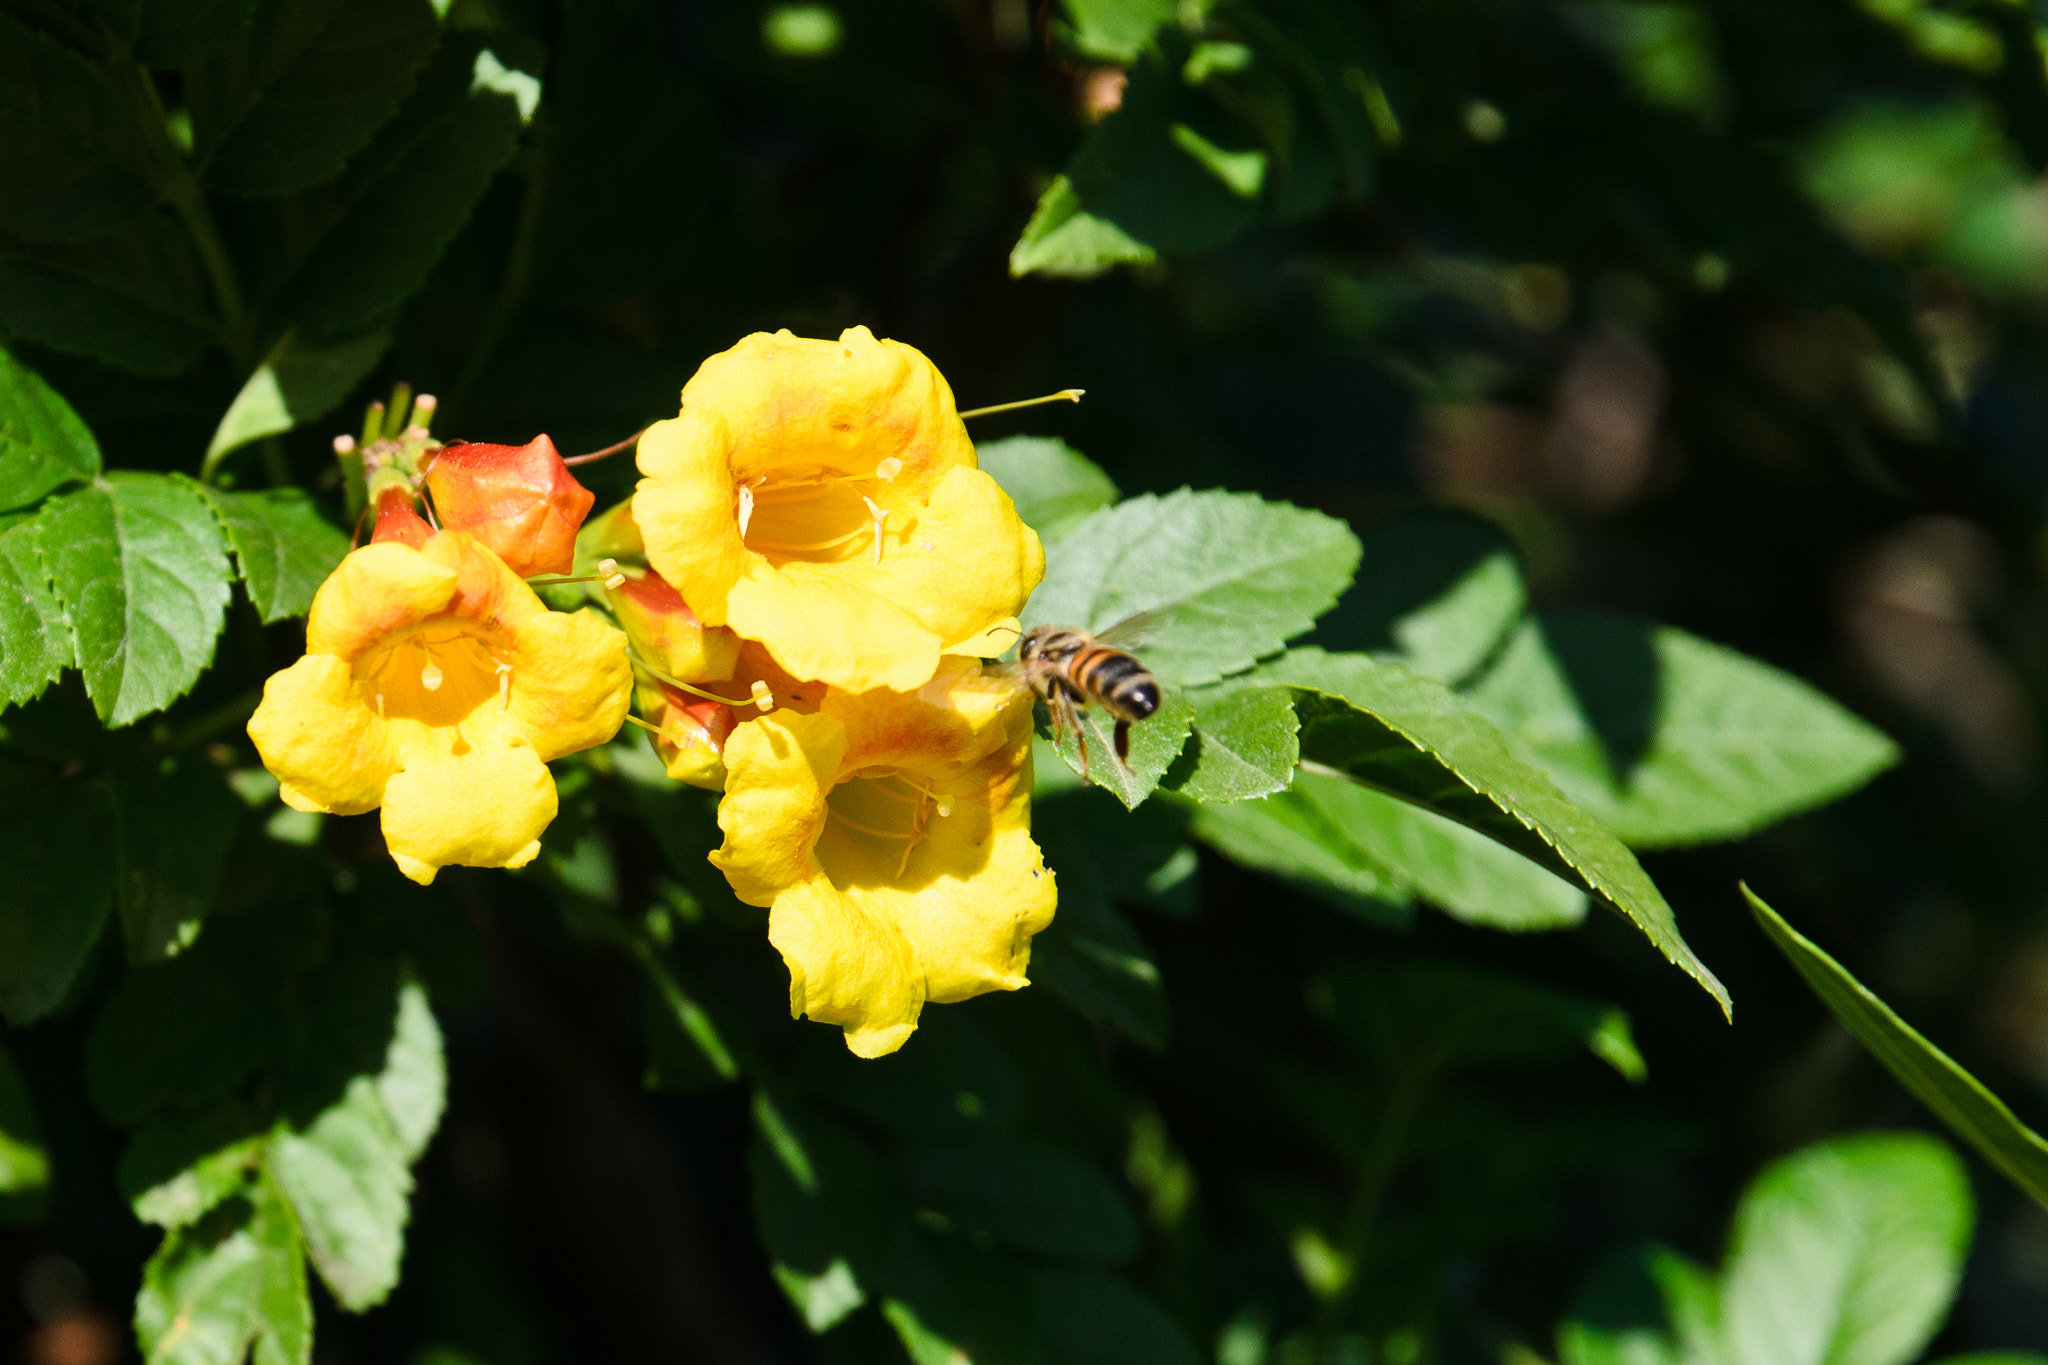 Photograph Yellow flower and a bee by Michael Goyberg on 500px